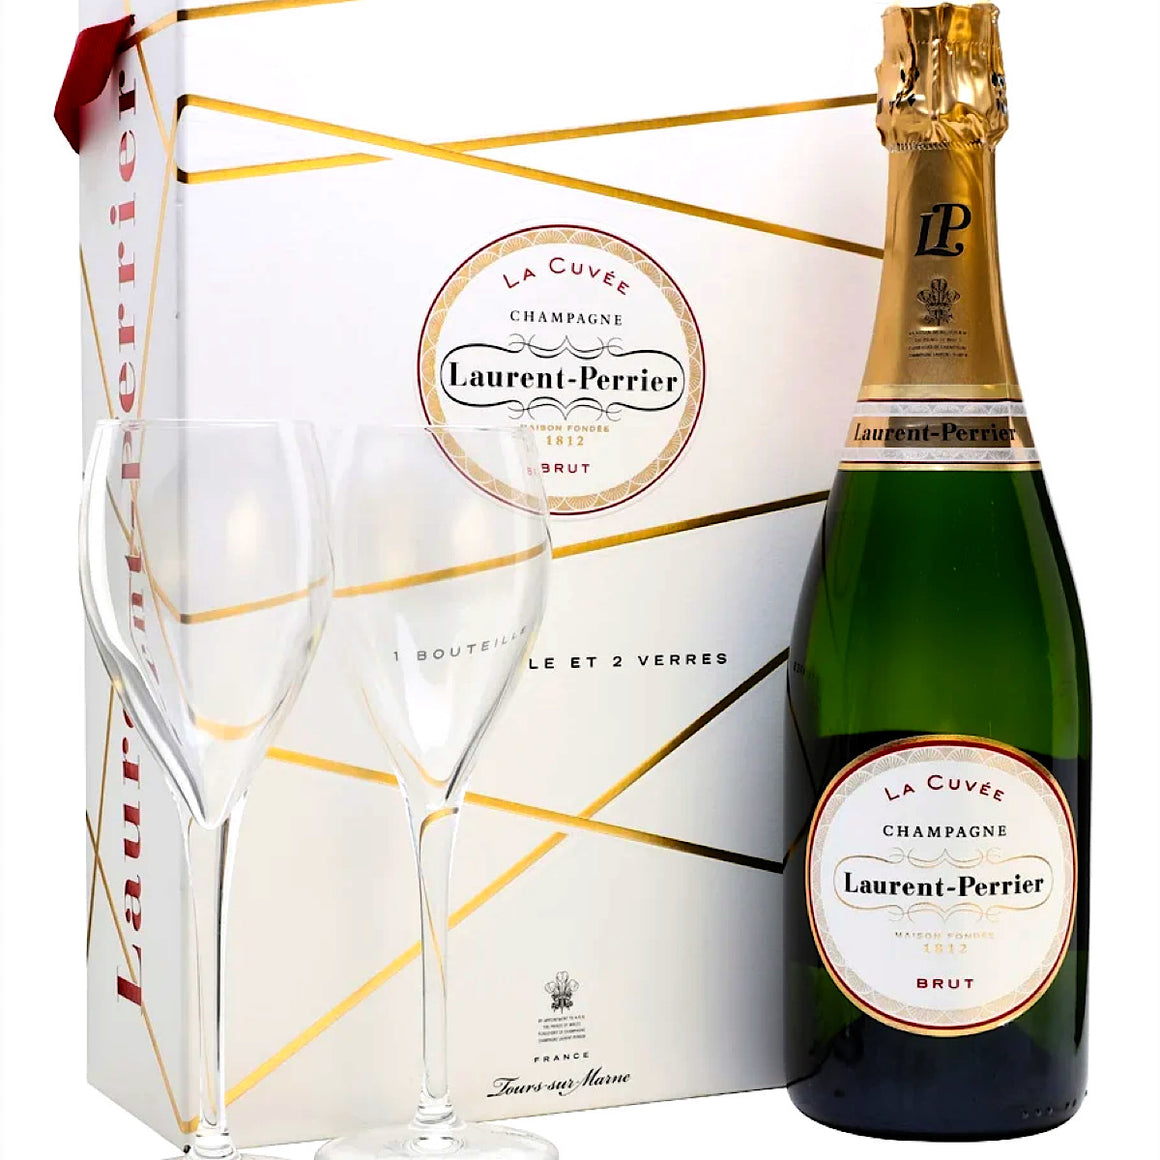 Laurent Perrier La Cuvee Brut Champagne 75cl 2 Glasses Gift Set